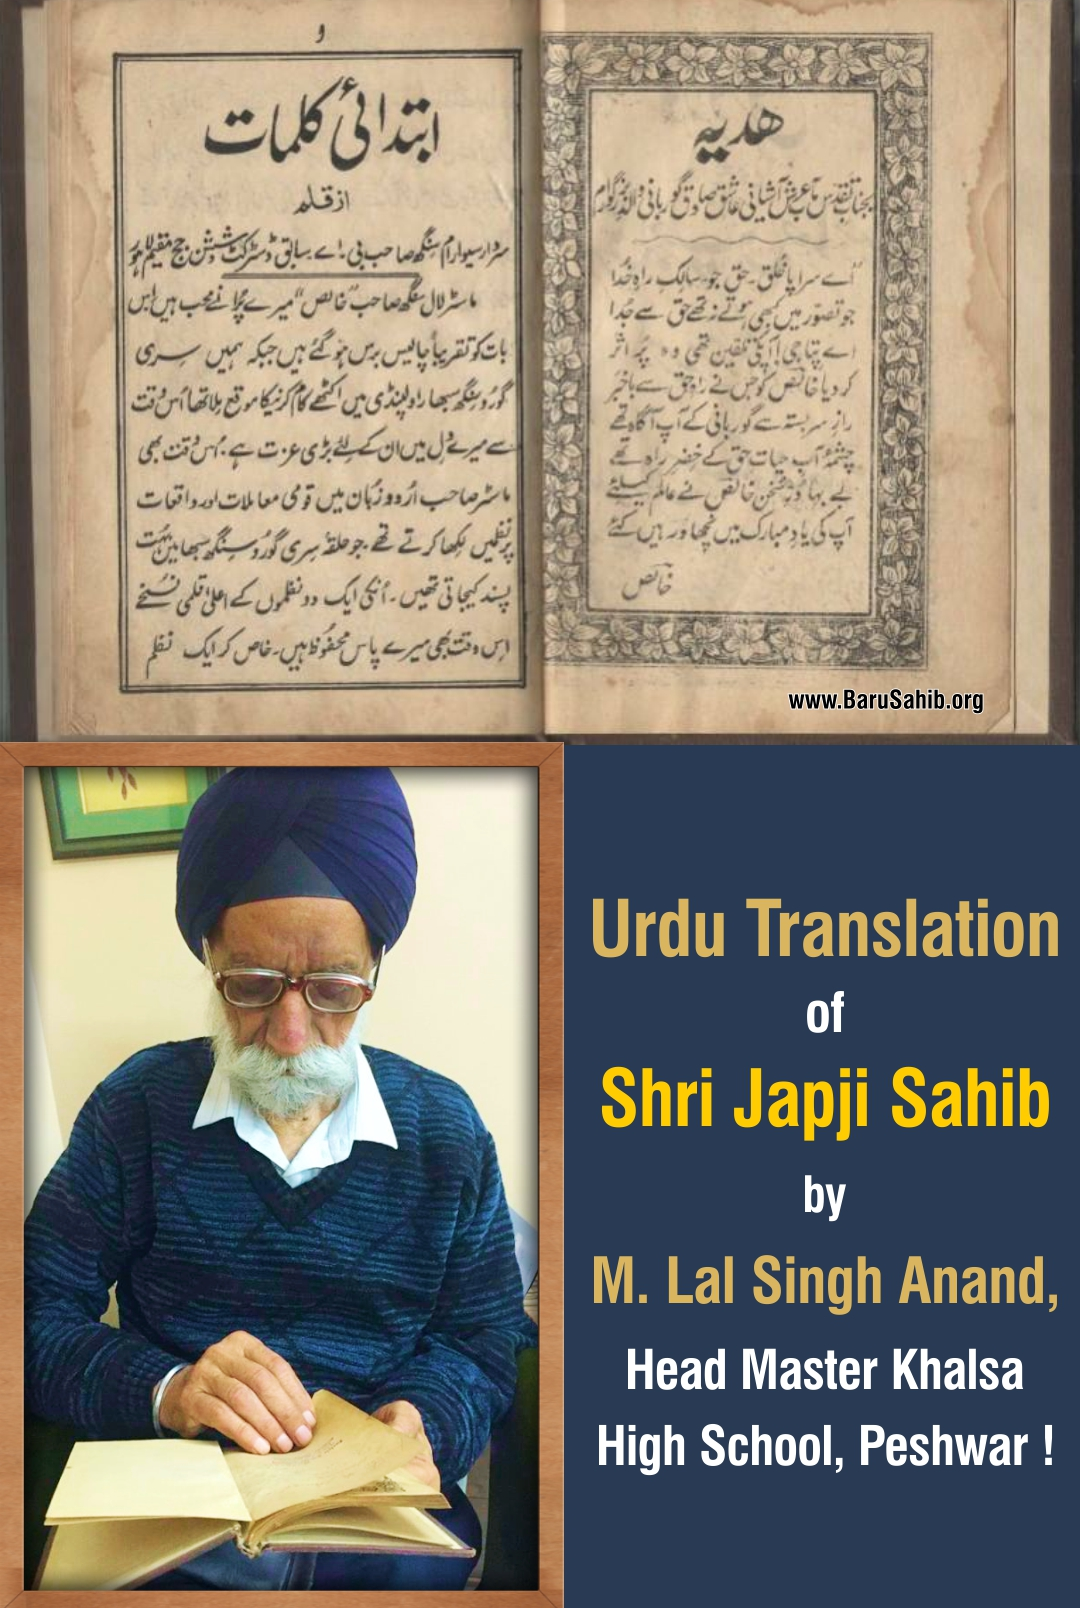 Urdu Translation of Shri Japji Sahib by M  Lal Singh Anand ,Head